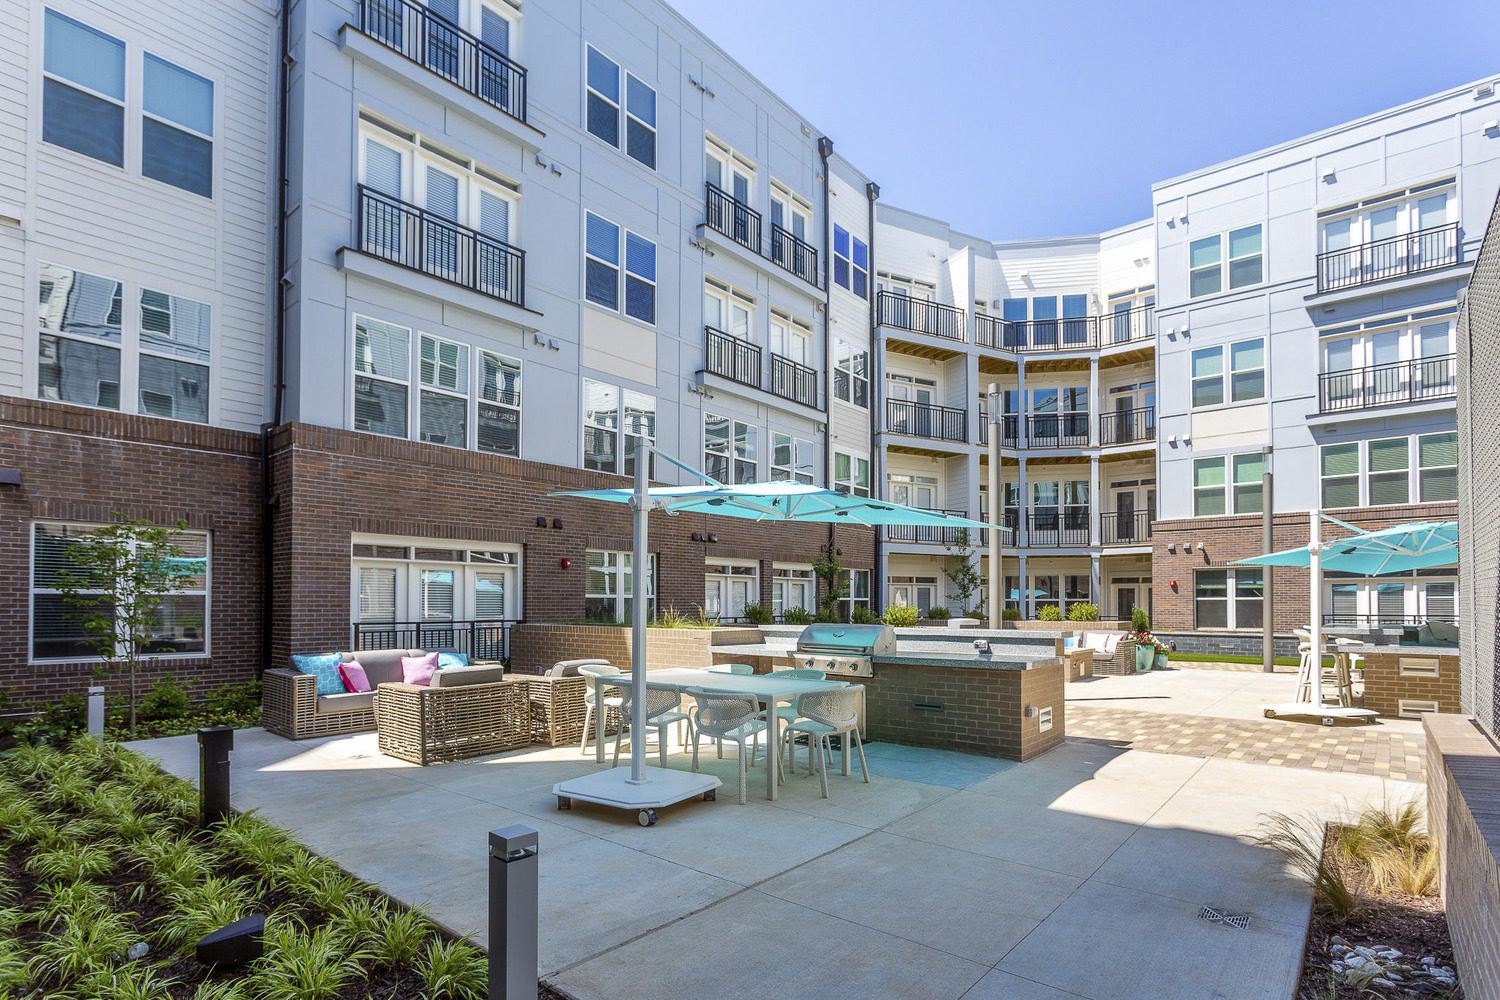 CBG builds Bell Shady Grove, a 315-Unit Mixed-Use Community with Amenities in Rockville, MD - Image #5